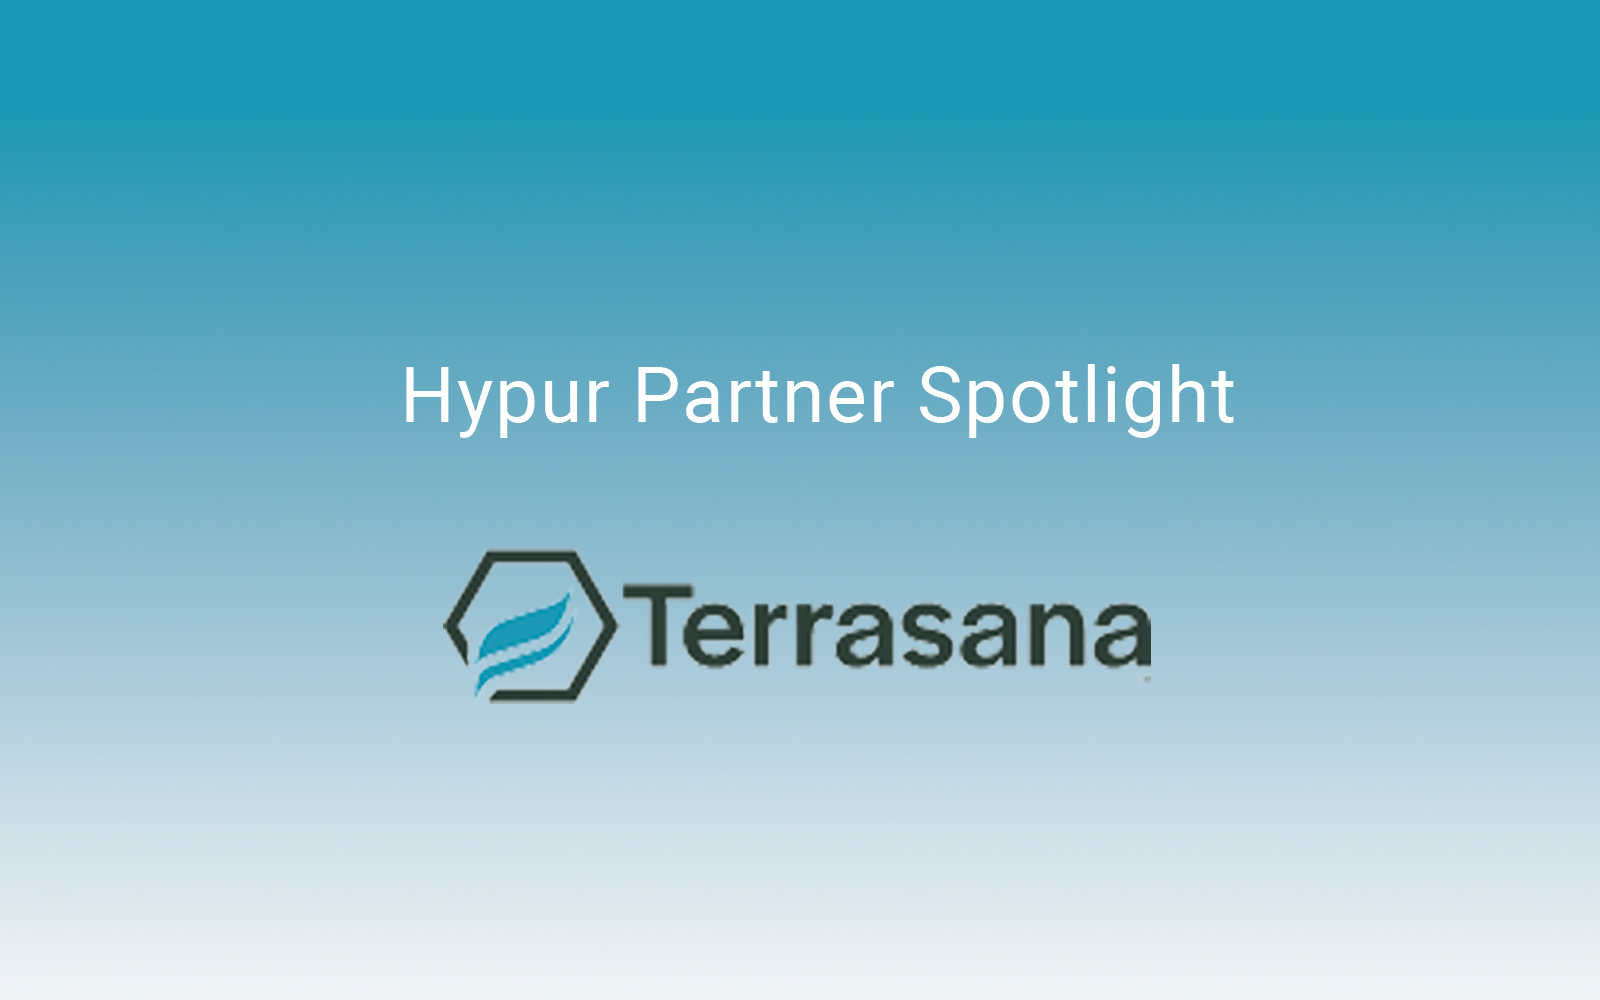 Hypur Partner Spotlight: Terrasana | Ohio Dispensary Spotlight